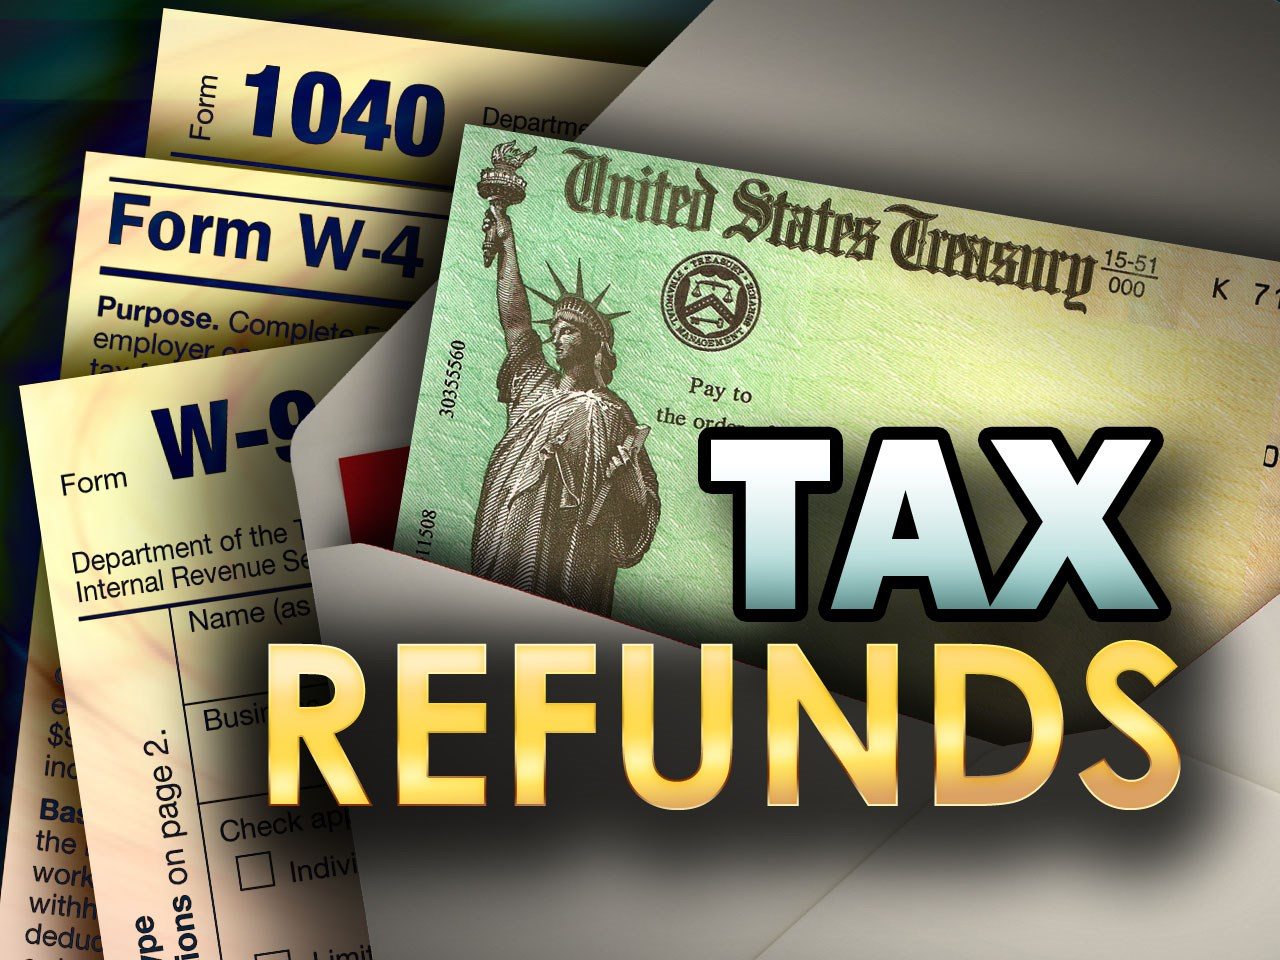 tax refunds.jpg